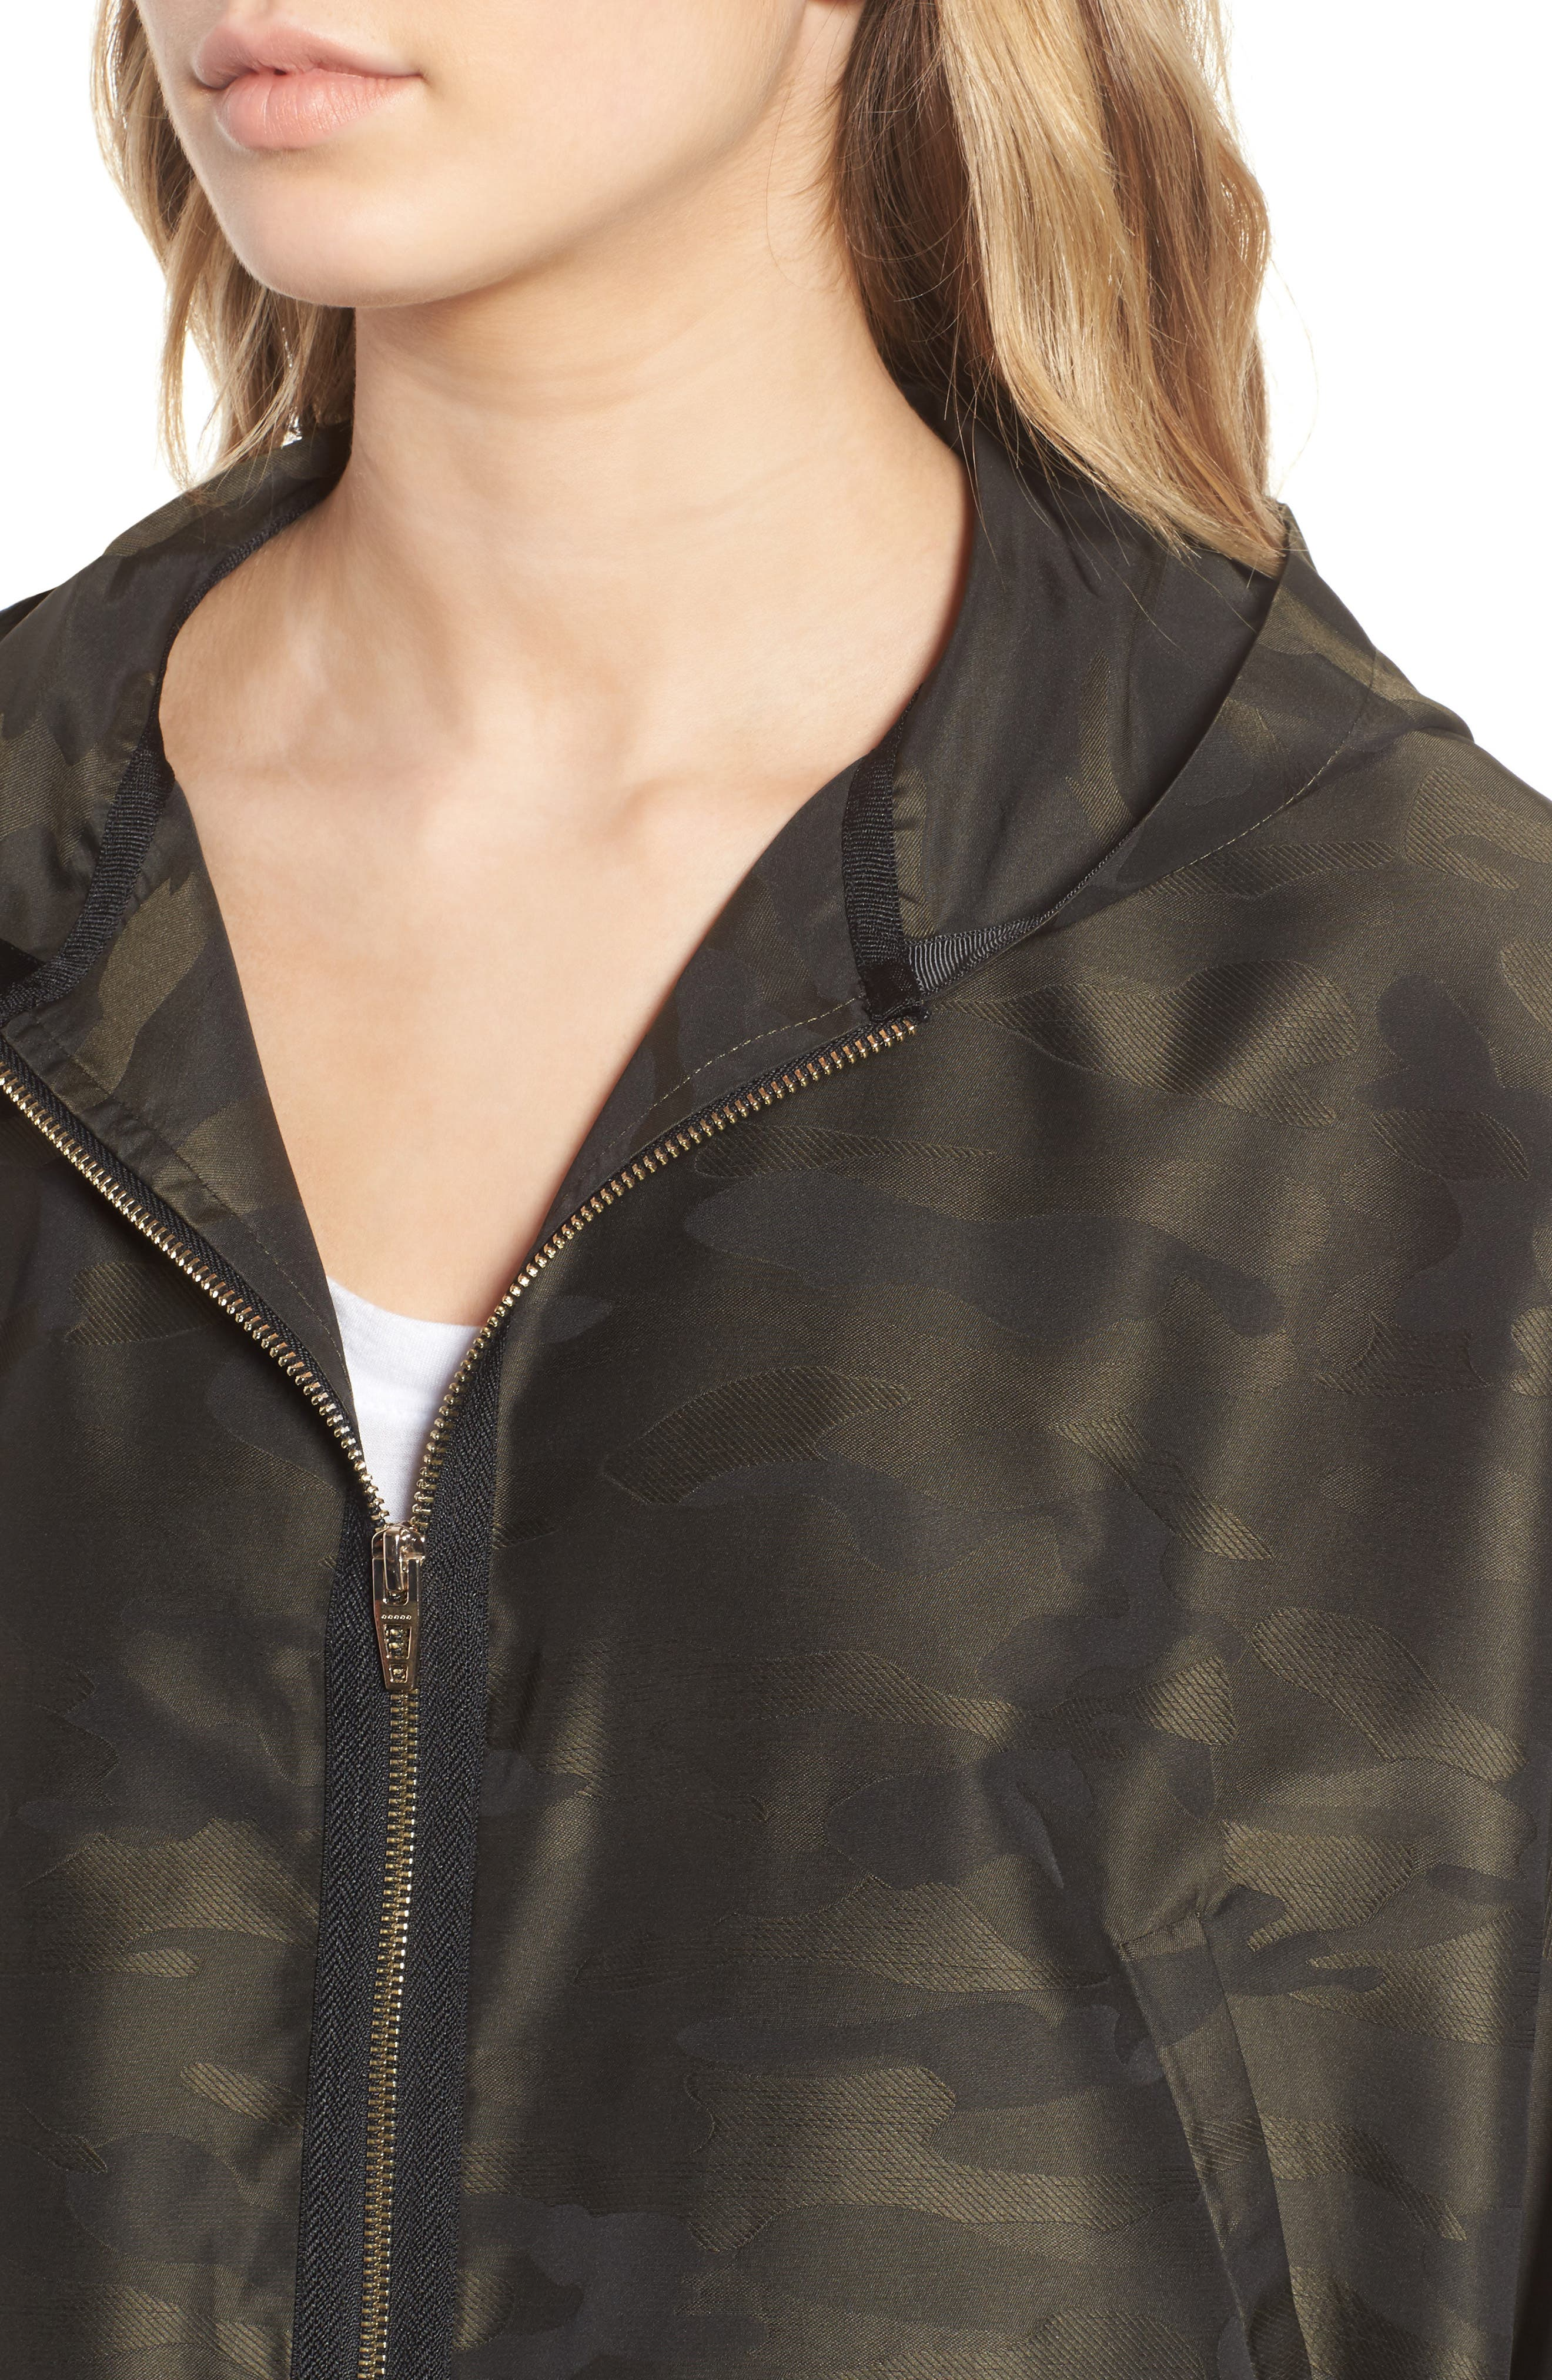 Camo We Not Bell Sleeve Jacket,                             Alternate thumbnail 4, color,                             Olive Camo